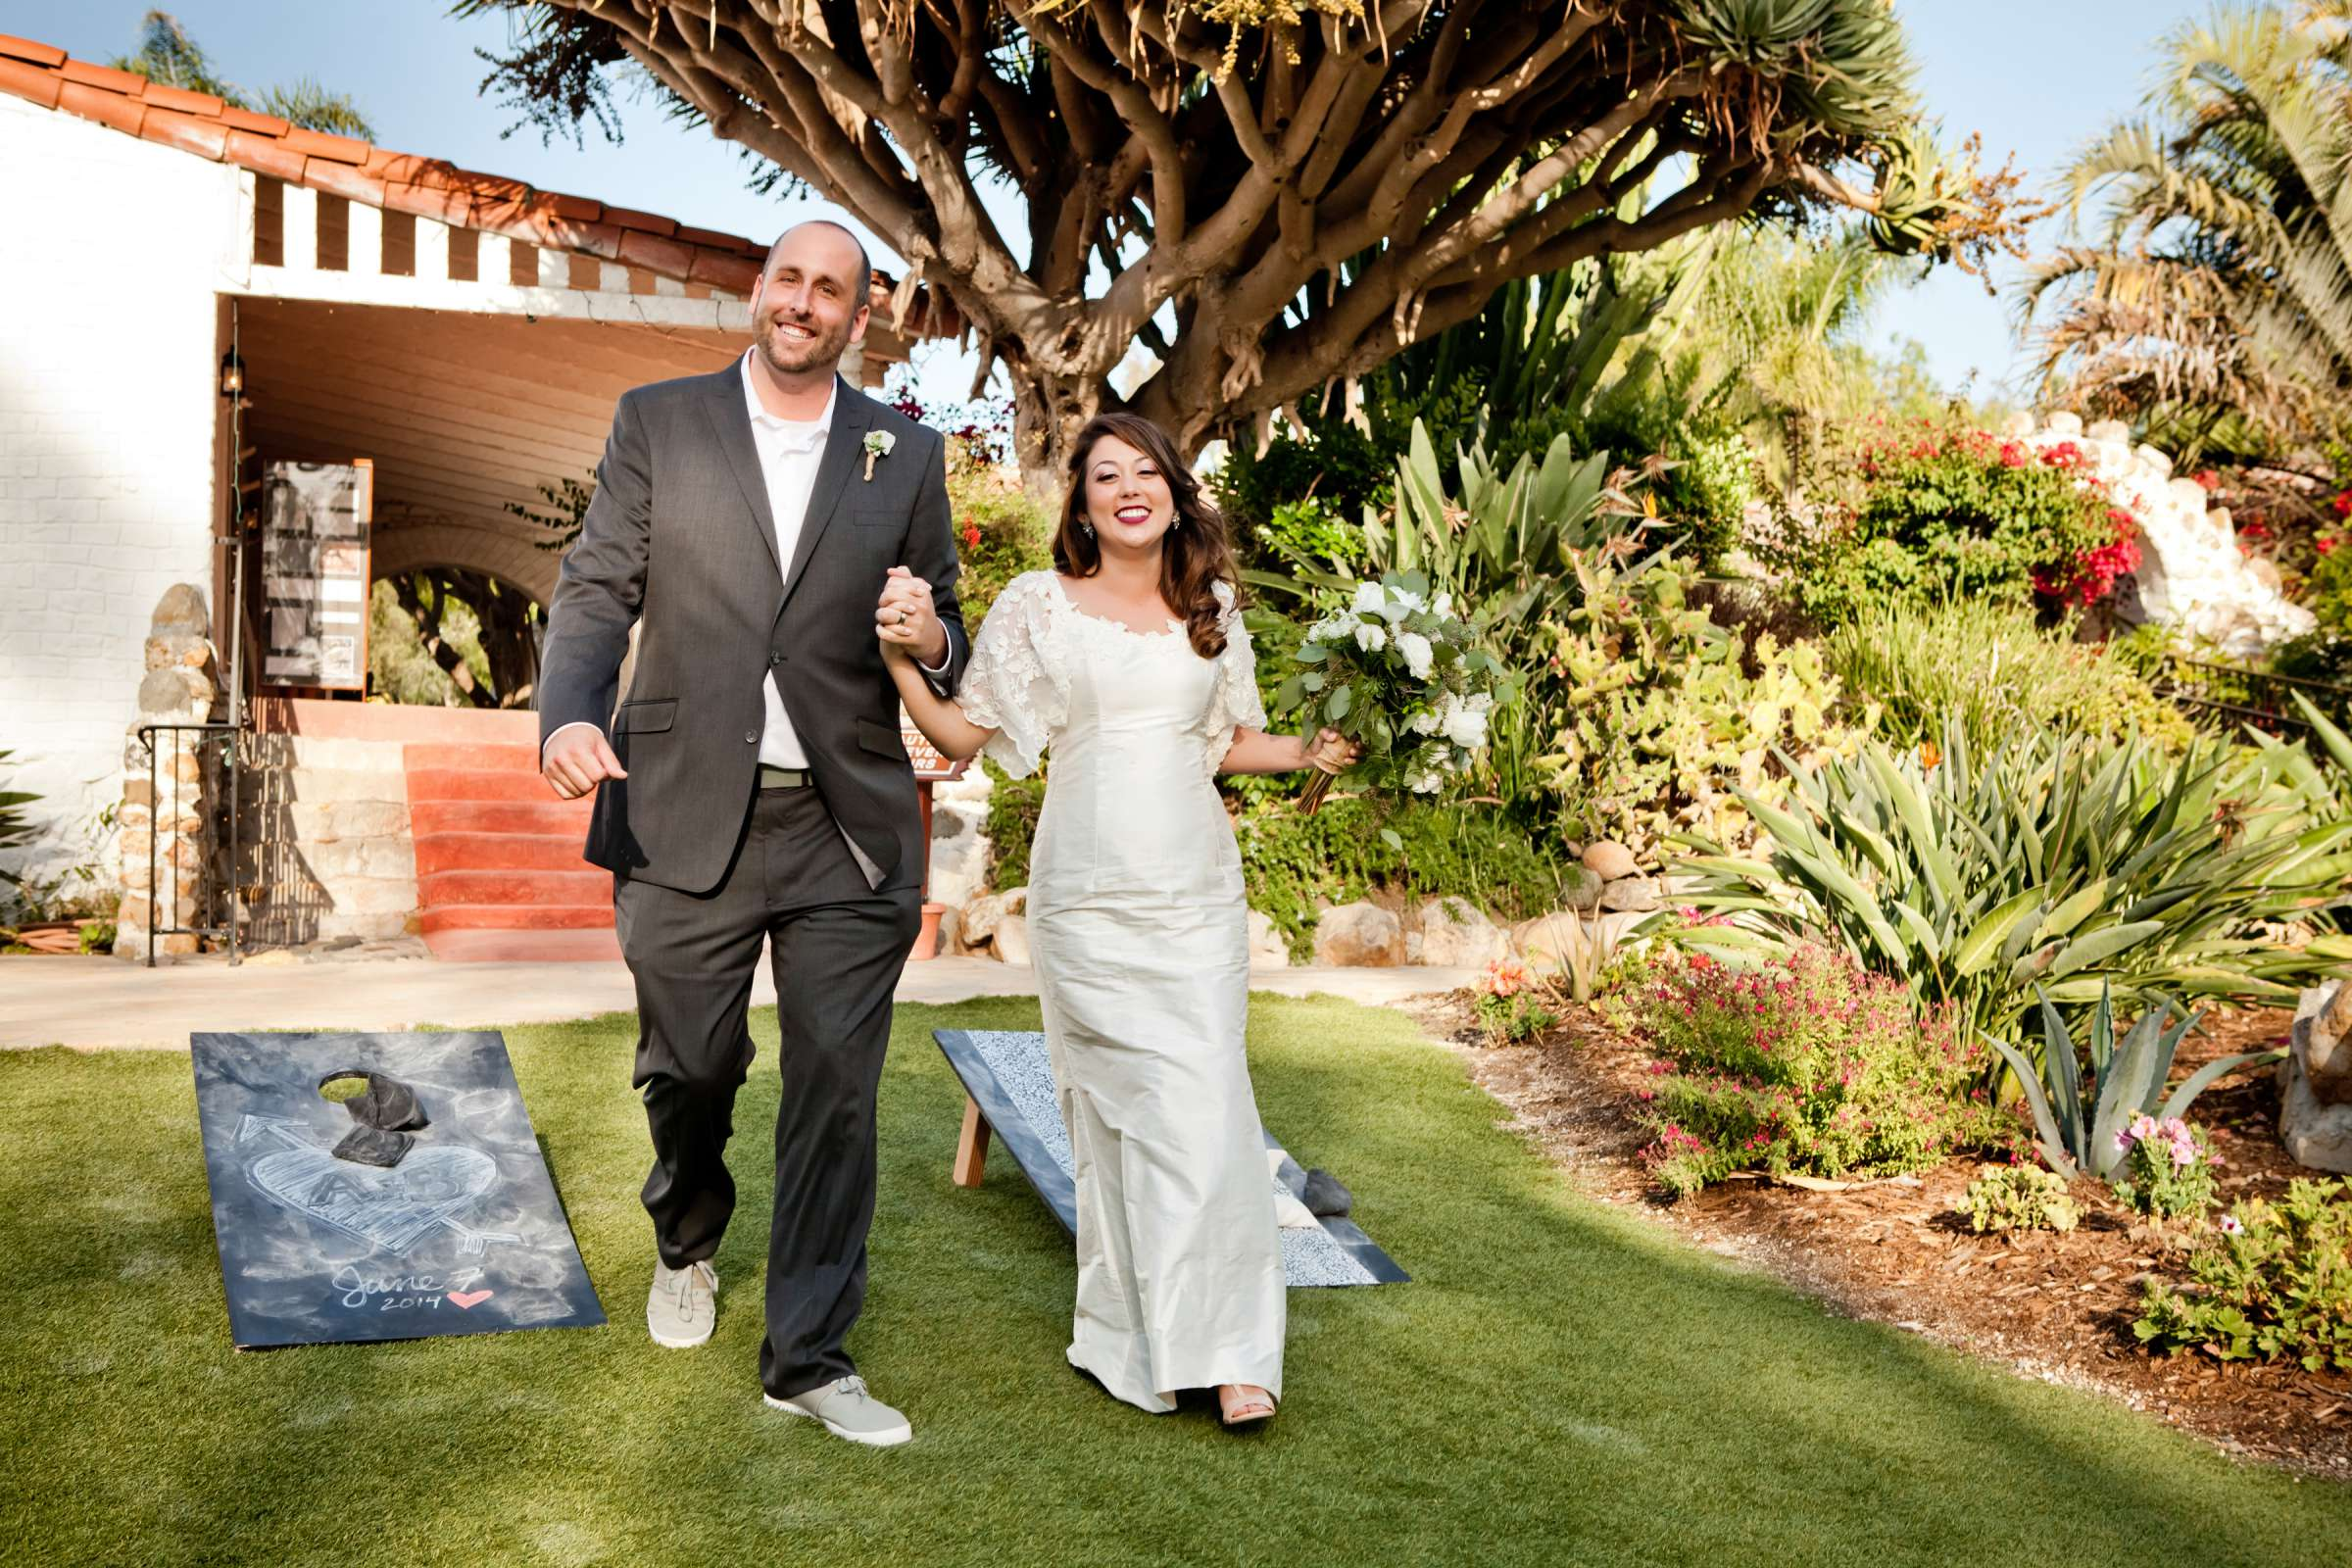 Leo Carrillo Ranch Wedding coordinated by Weddings by Lisa Nicole, Bethany and Aaron Wedding Photo #38 by True Photography